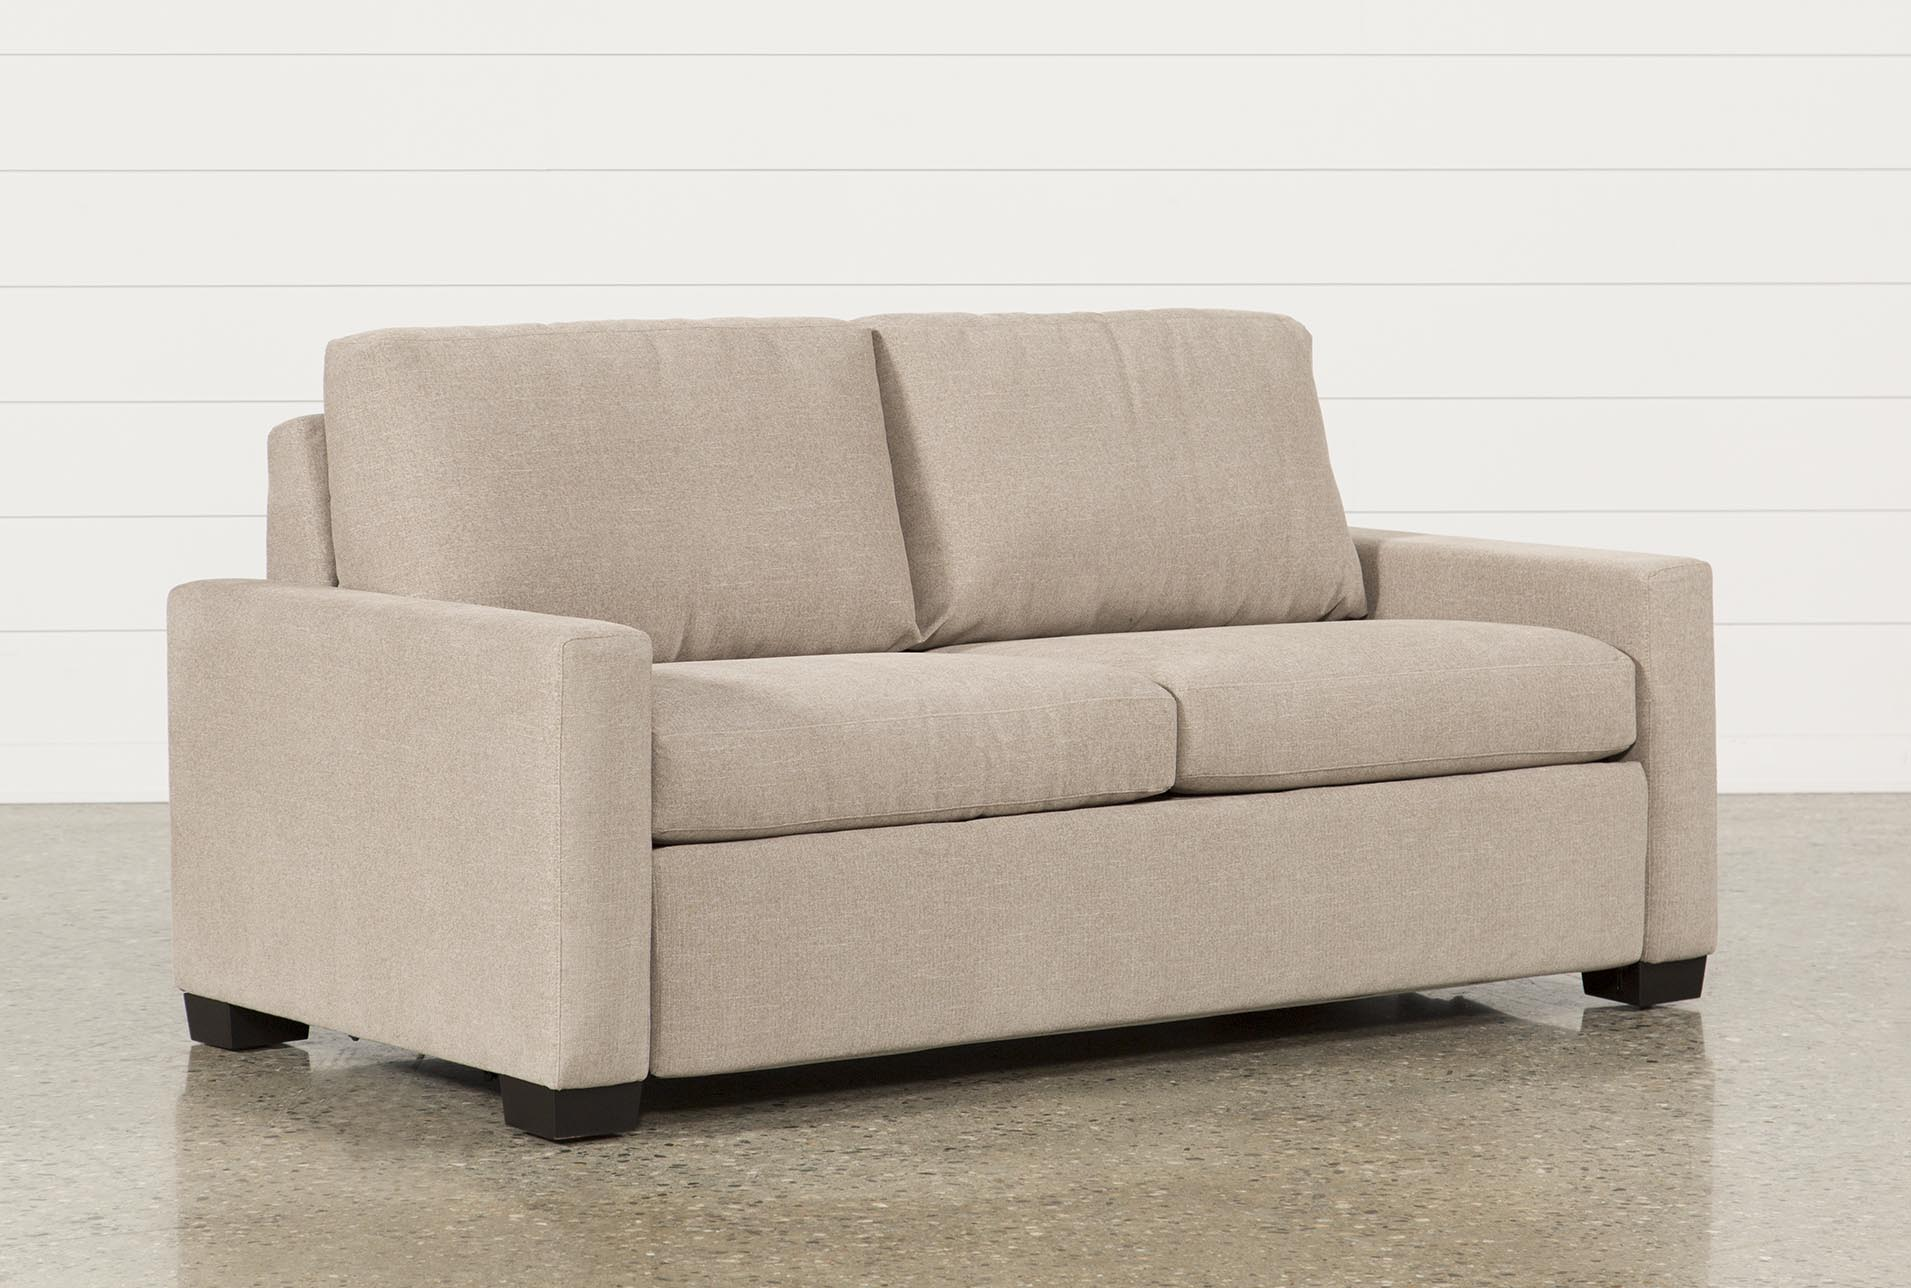 Mackenzie Mink Queen Sofa Sleeper CLEARANCE